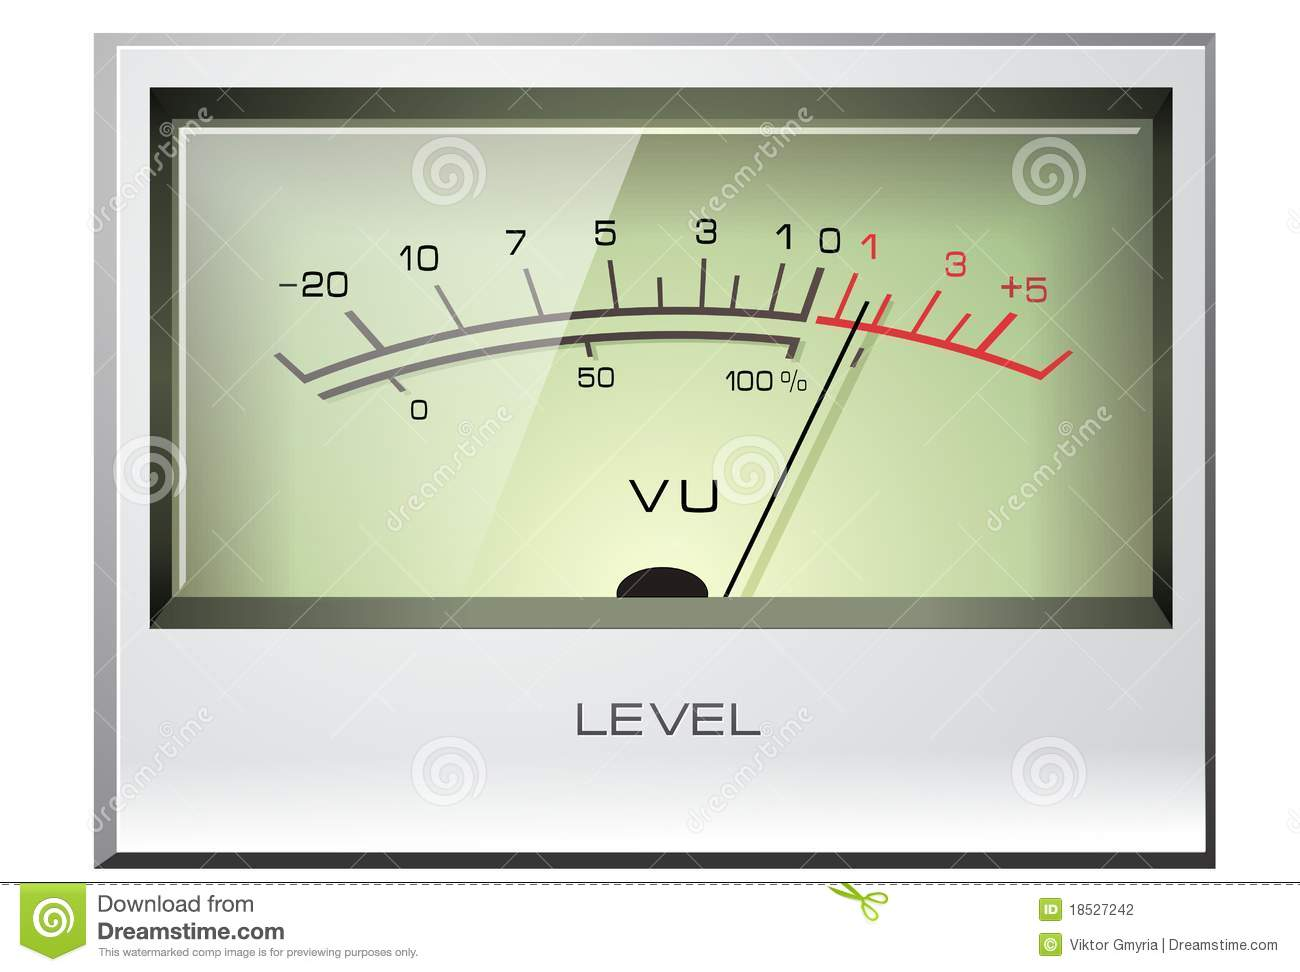 Analog Vu Meter : Analog signal vu meter with green display images frompo